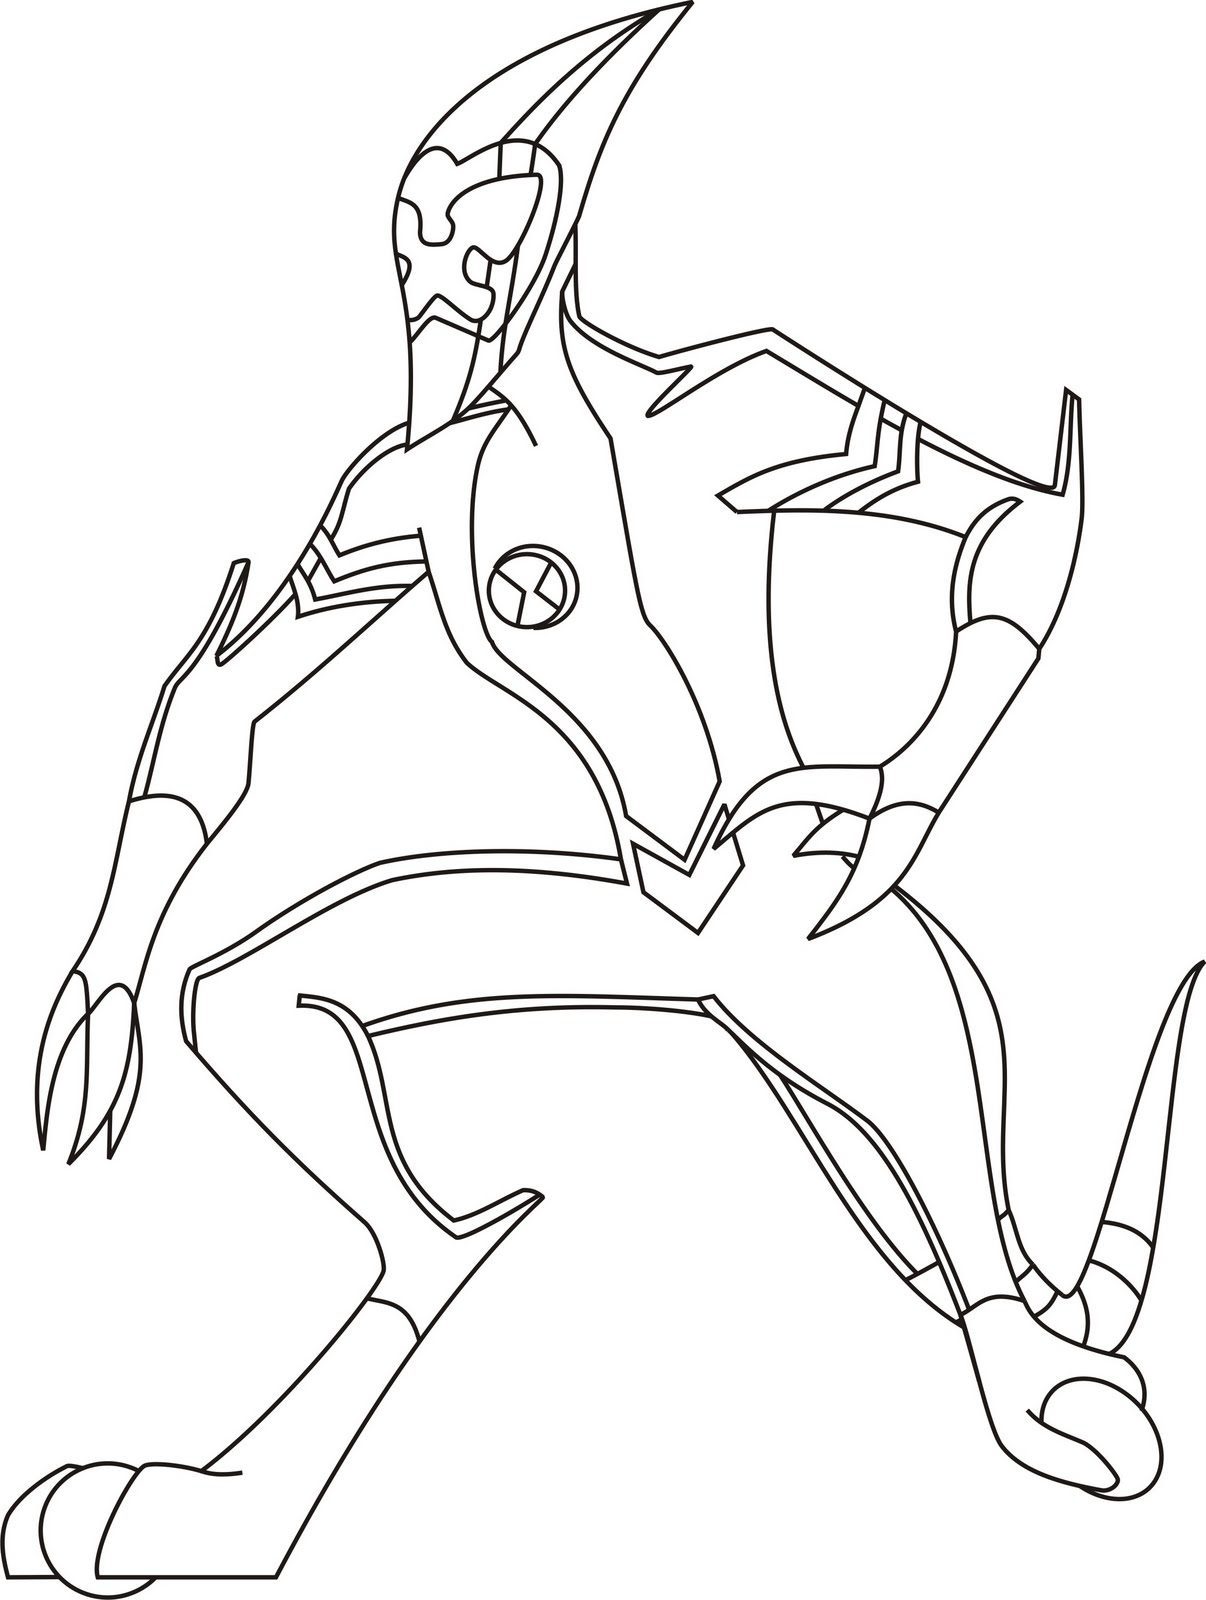 Ben 10 para colorir ben 10 colouring page junho 2010 for Ben 10 ultimate alien coloring pages